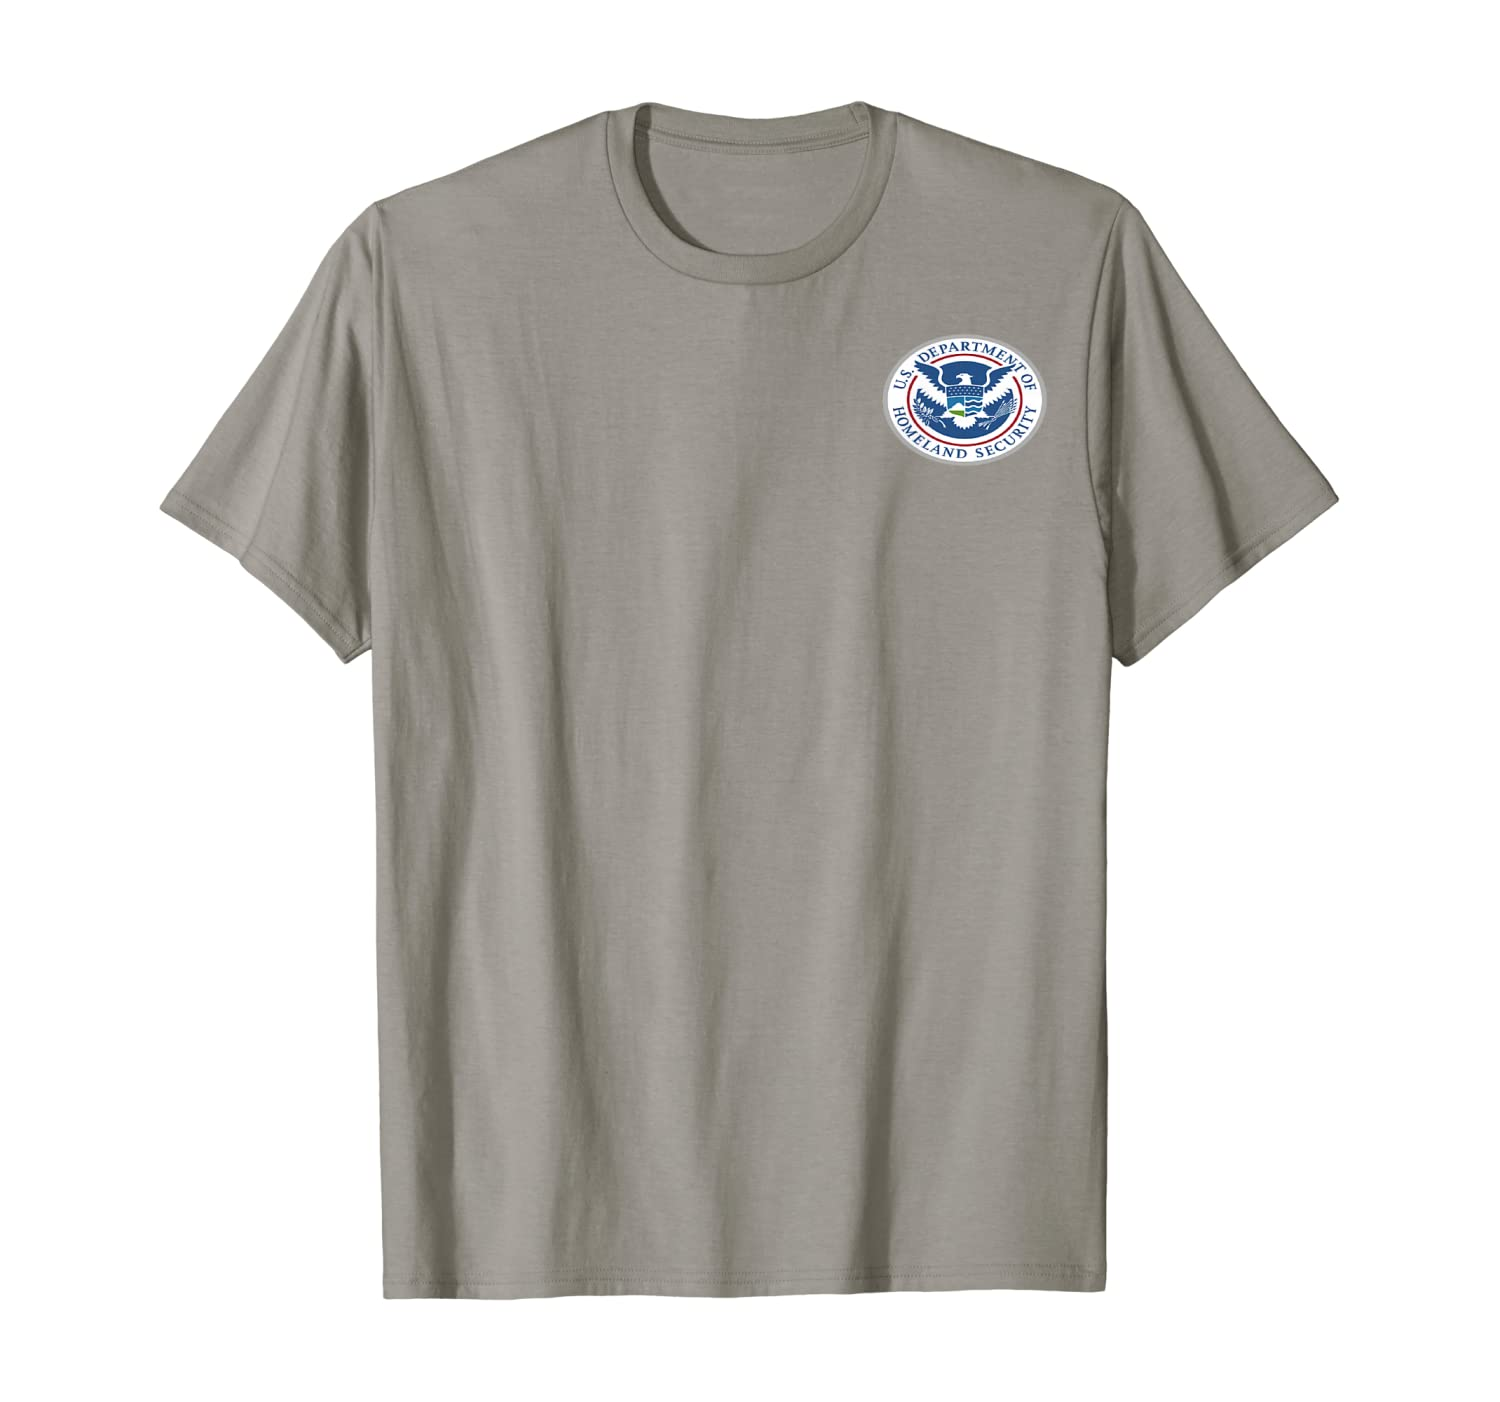 U.S. DEPARTMENT OF HOMELAND SECURITY - T-SHIRT